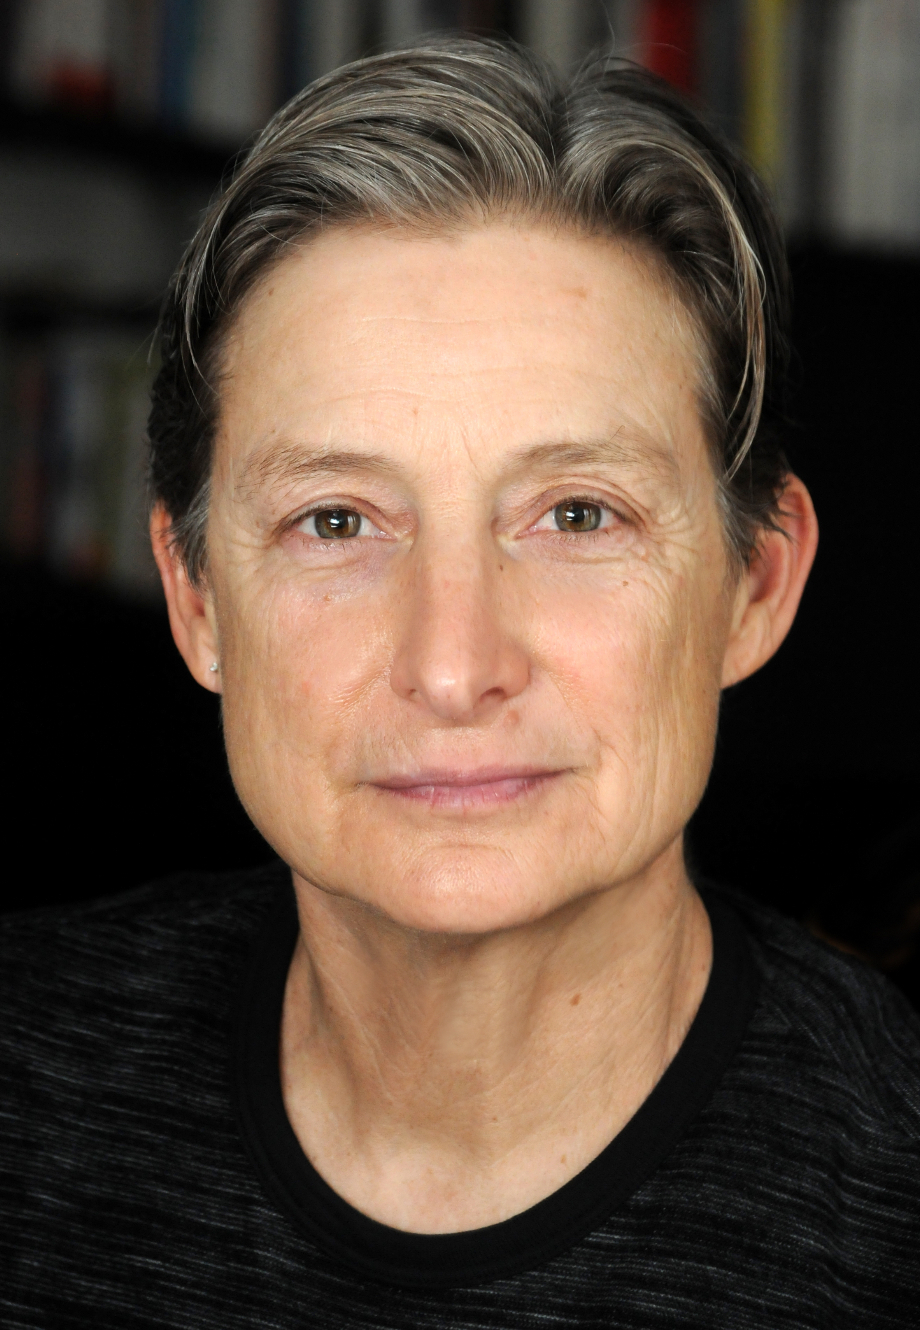 judith butler in media studies Introduction queer theory emerged from departments of literature, film, rhetoric, and critical studies in universities in the united states, united kingdom, and europe during the early 1990s, exemplified and inspired by the publication of two paradigm-shifting books: judith butler's gender trouble: feminism and the subversion of identity.